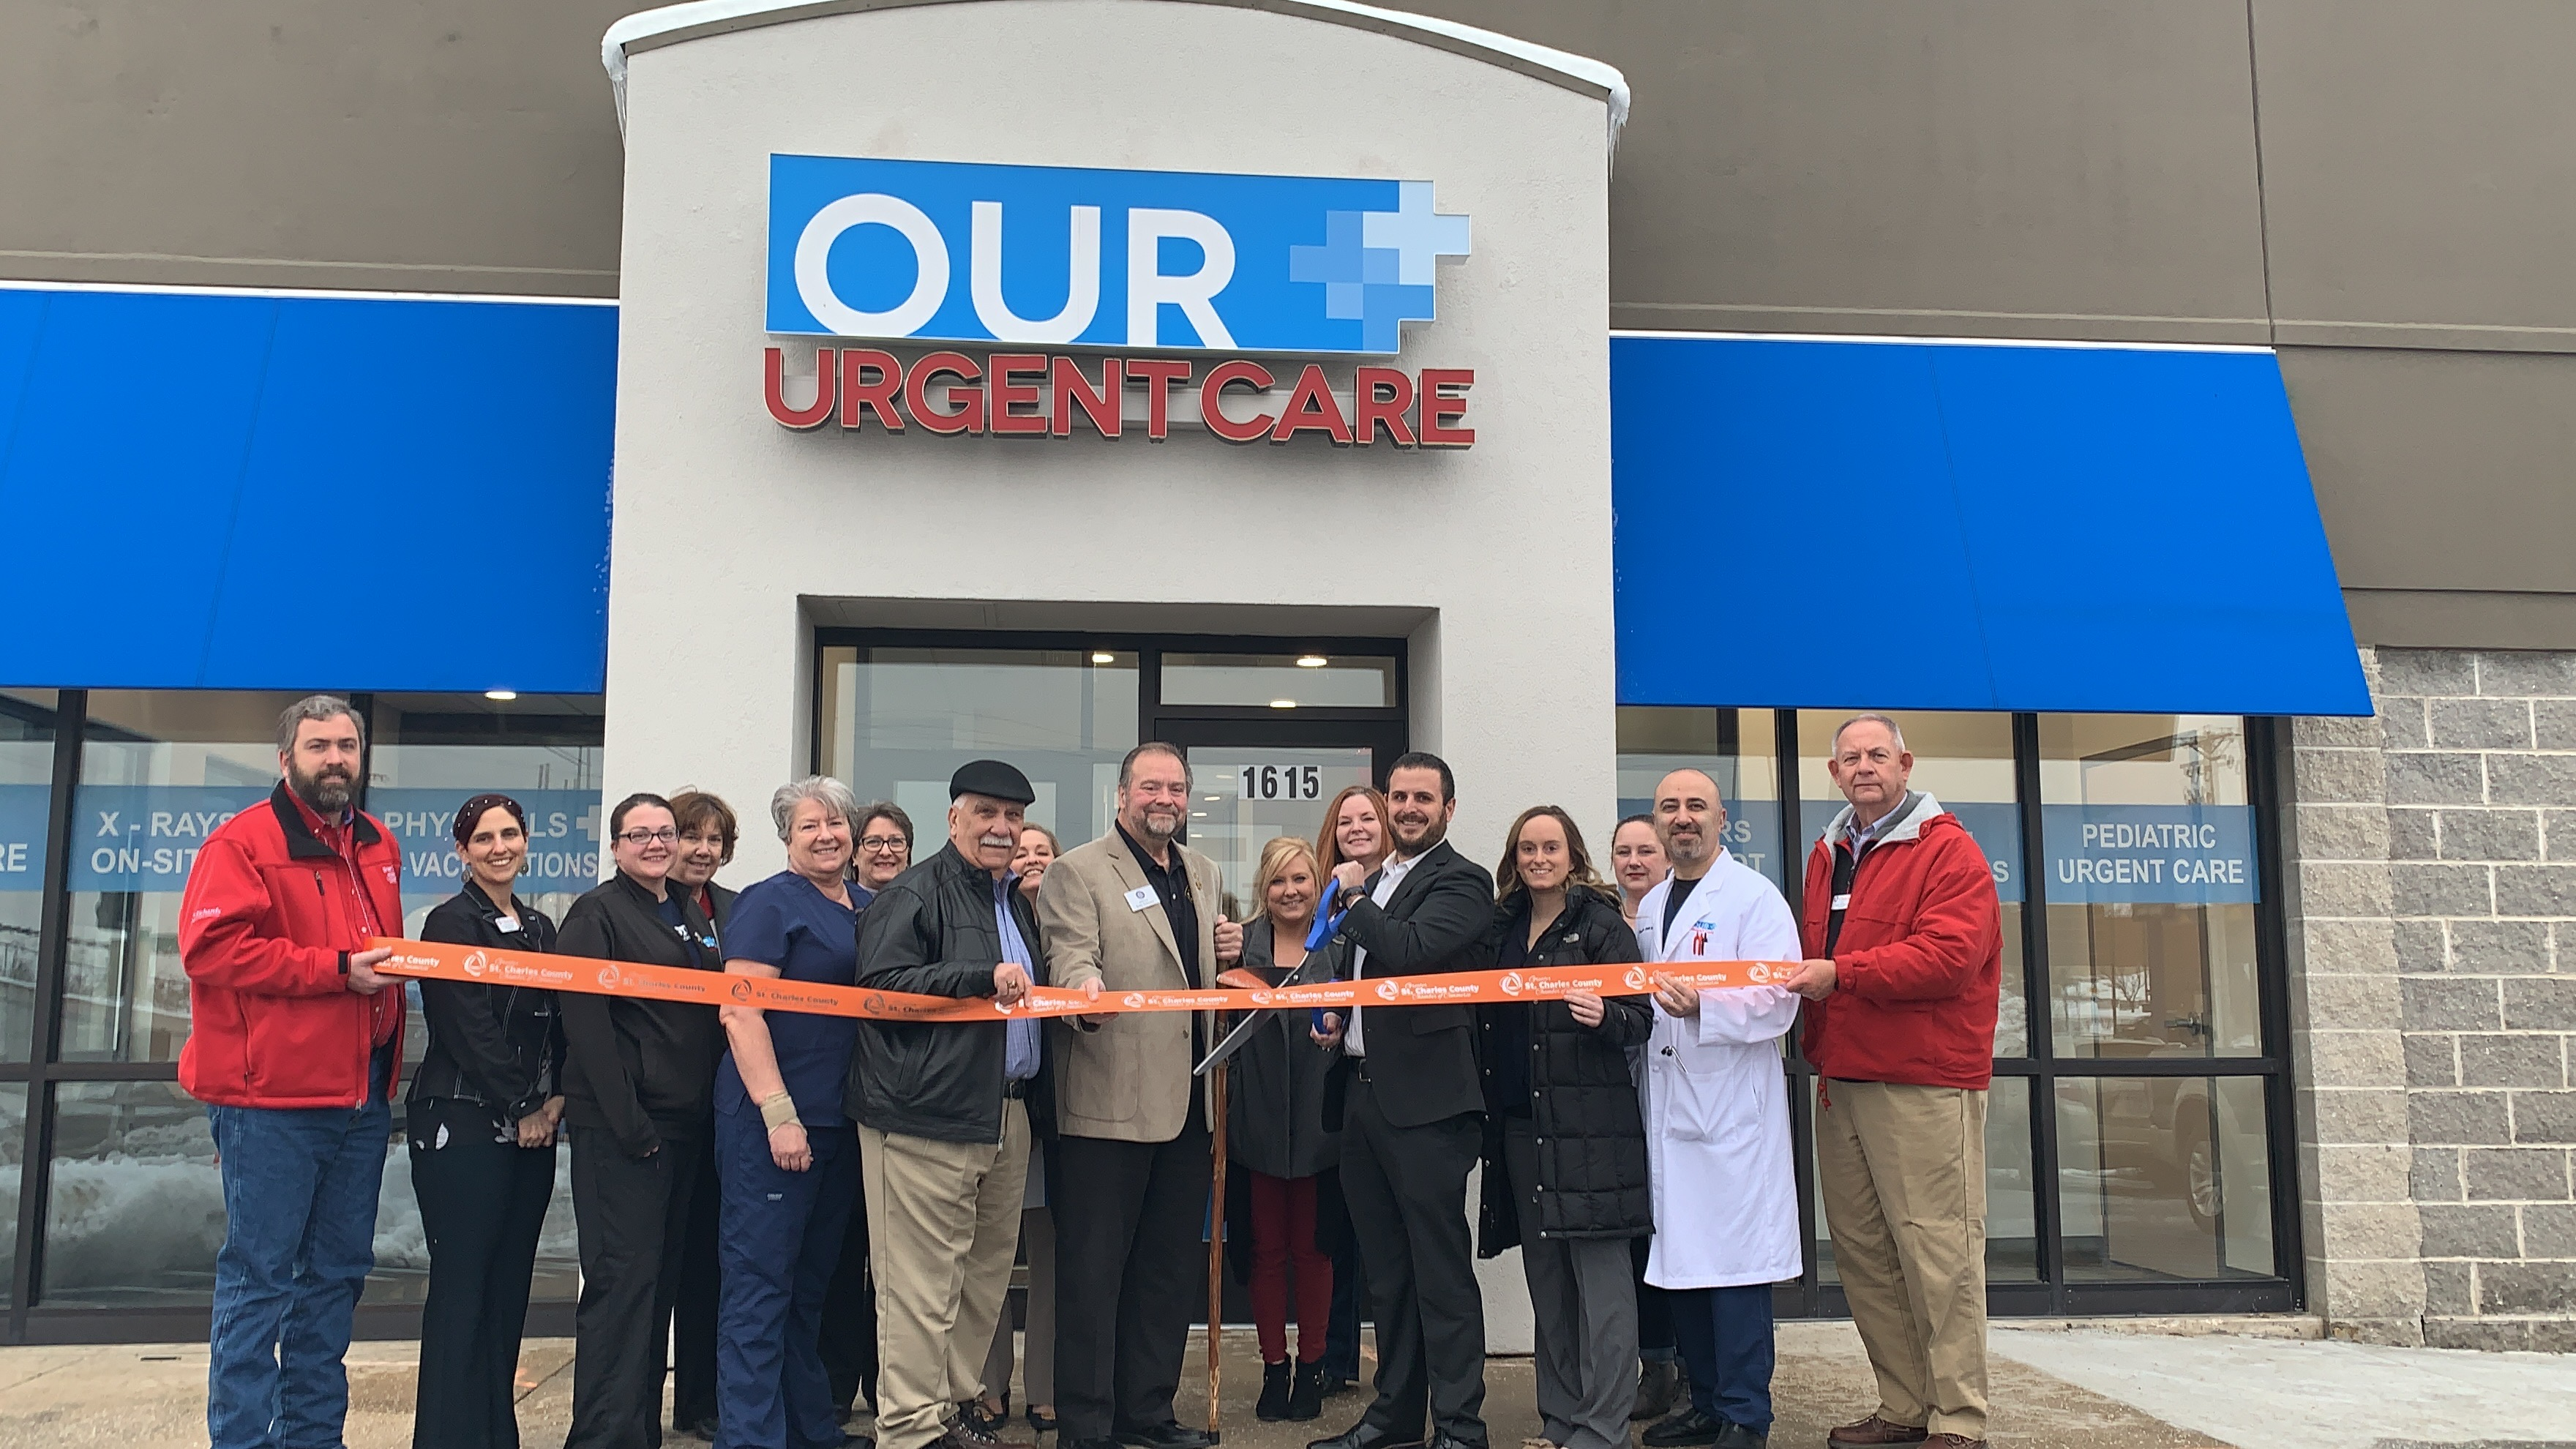 Our Urgent Care Celebrates  Grand Opening with Ribbon Cutting